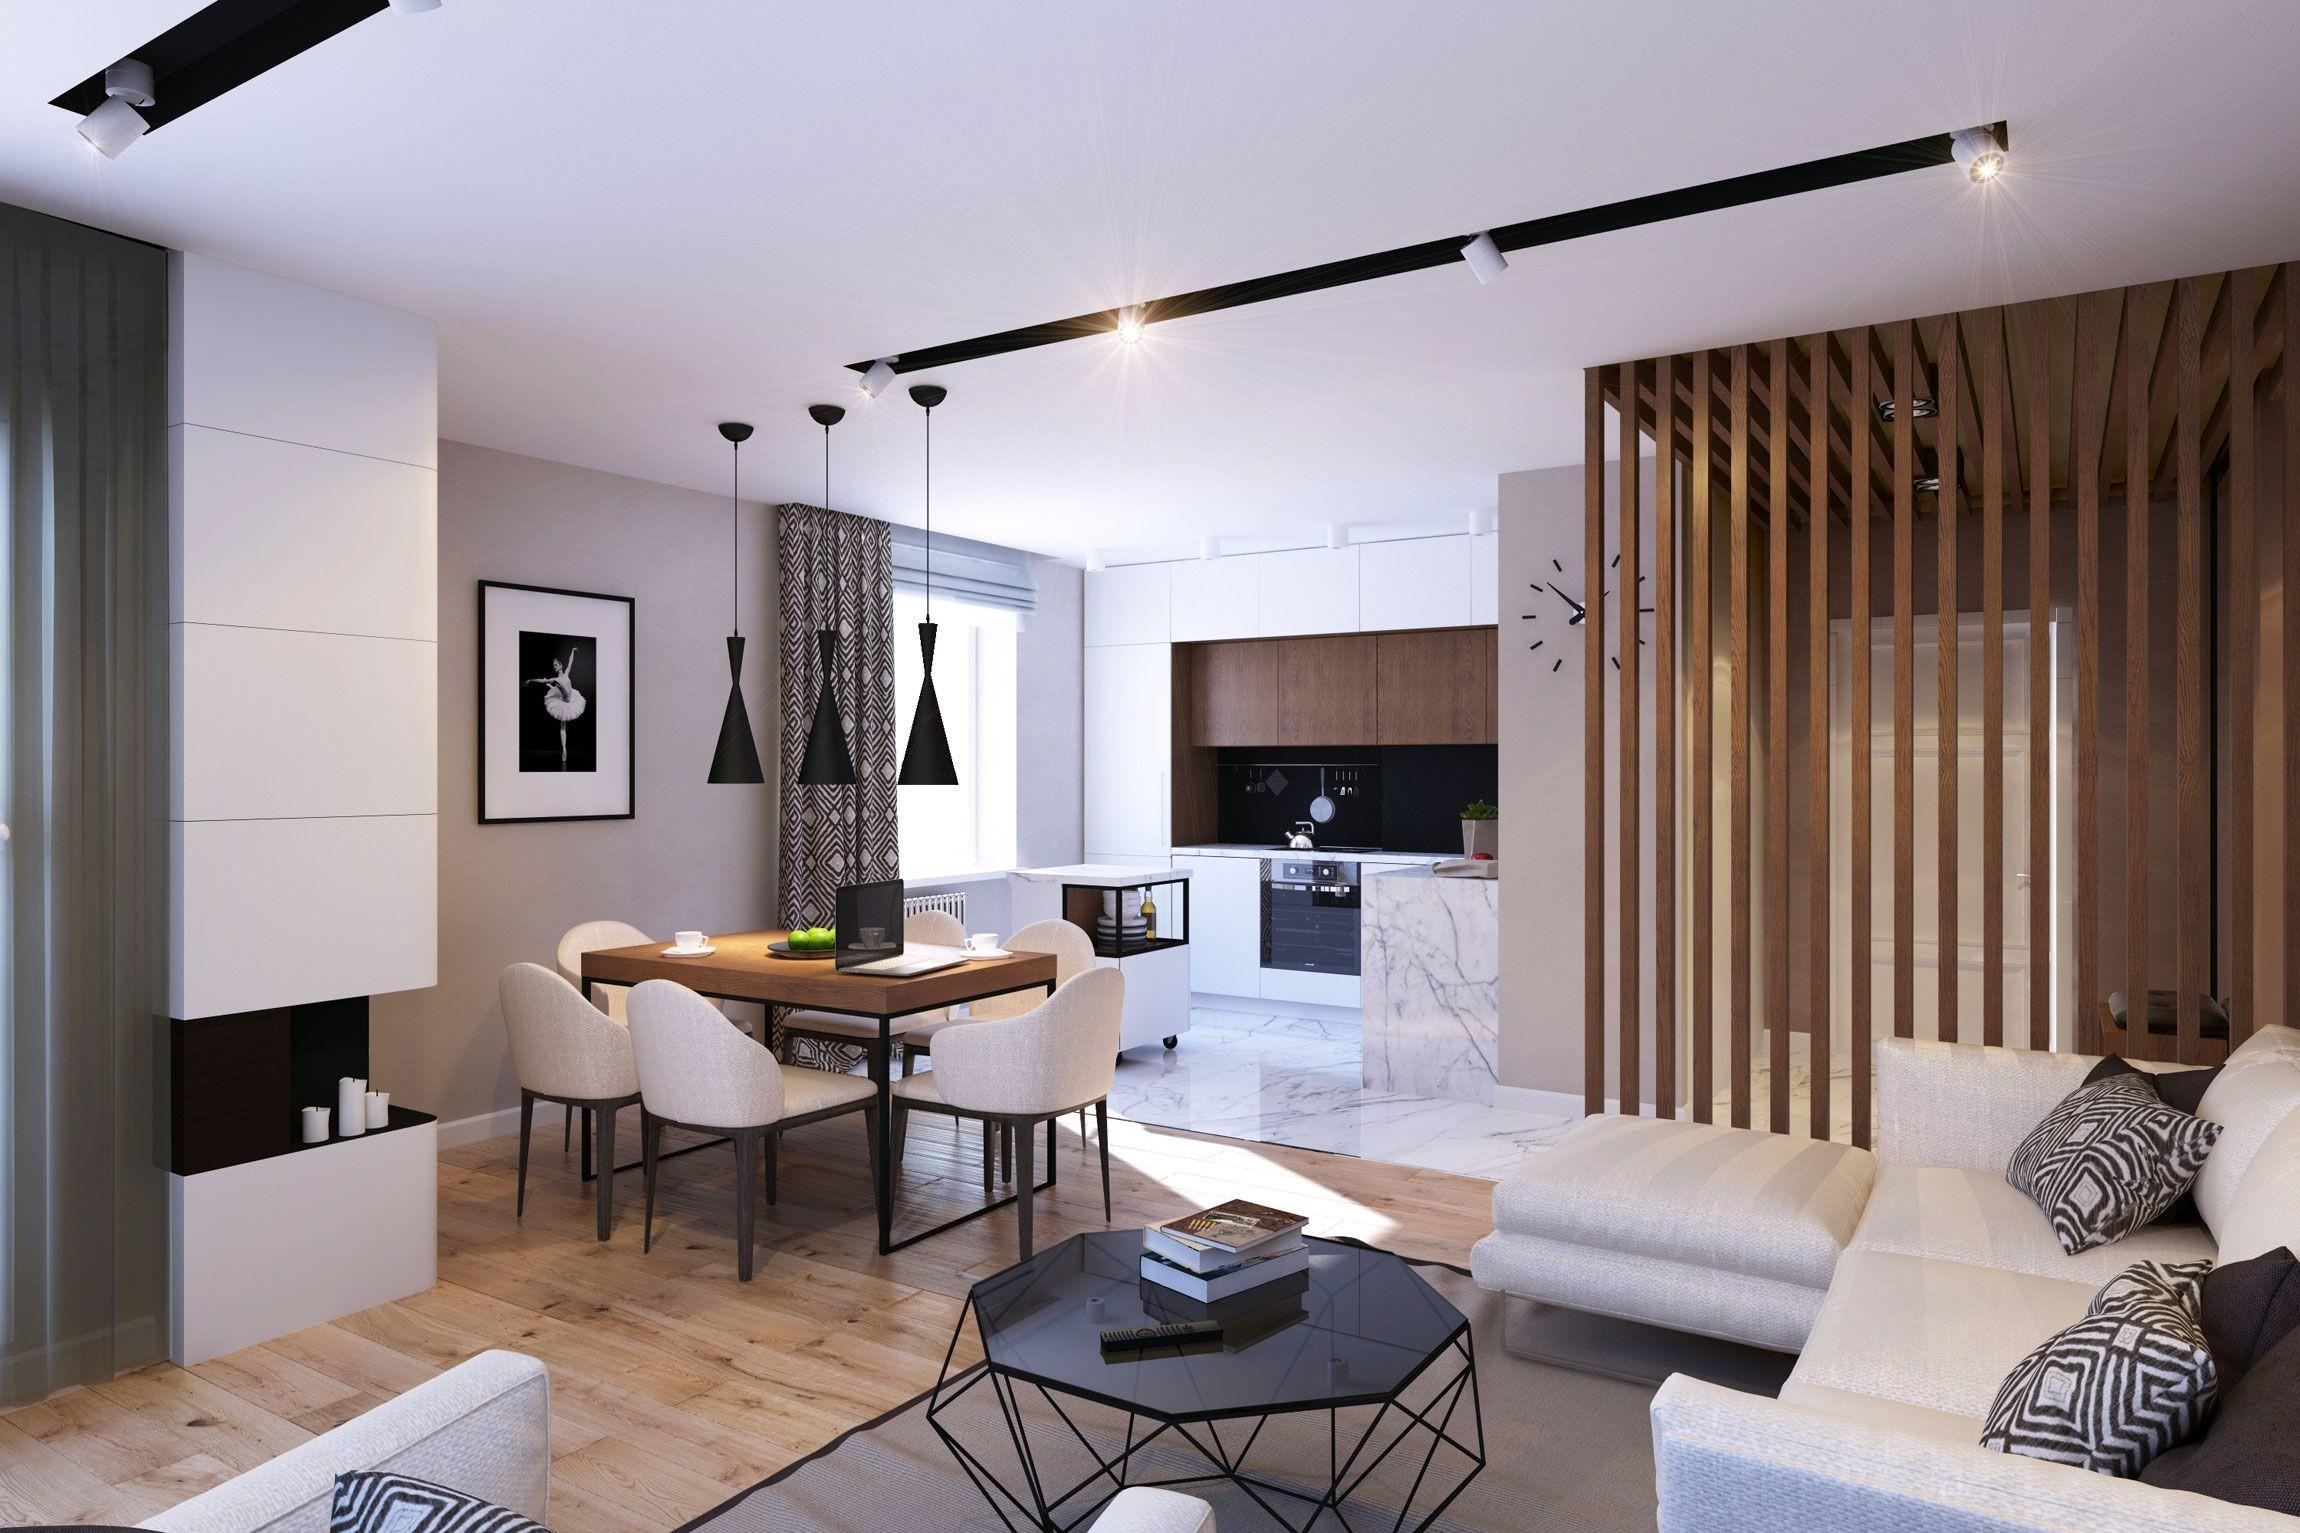 9 Excellent Ultra Modern Apartment Design Moscow That Makes You